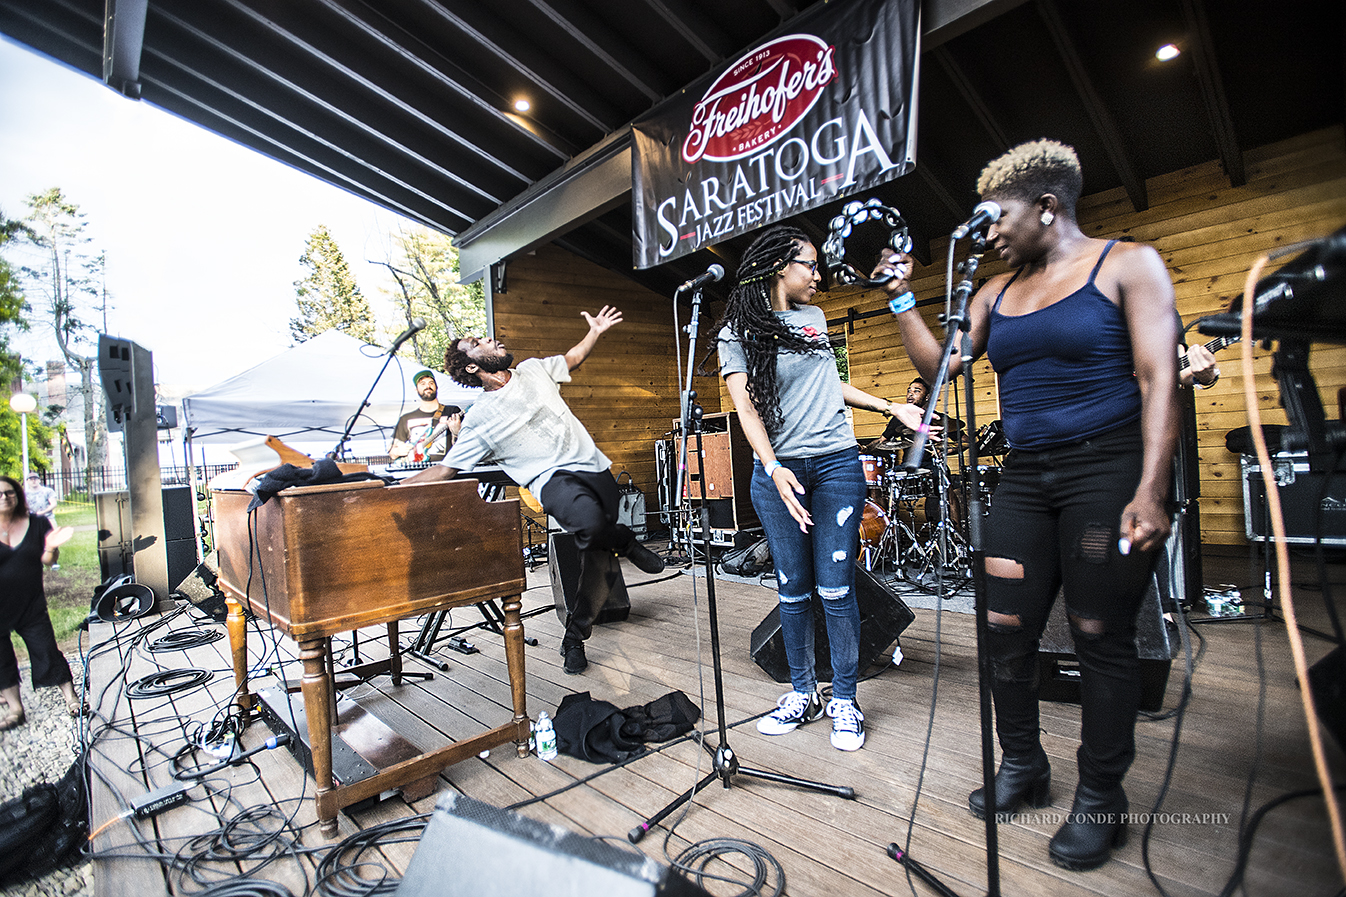 Cory Henry and the Funk Apostles at the Freihofer Saratoga Jazz Festival 2017